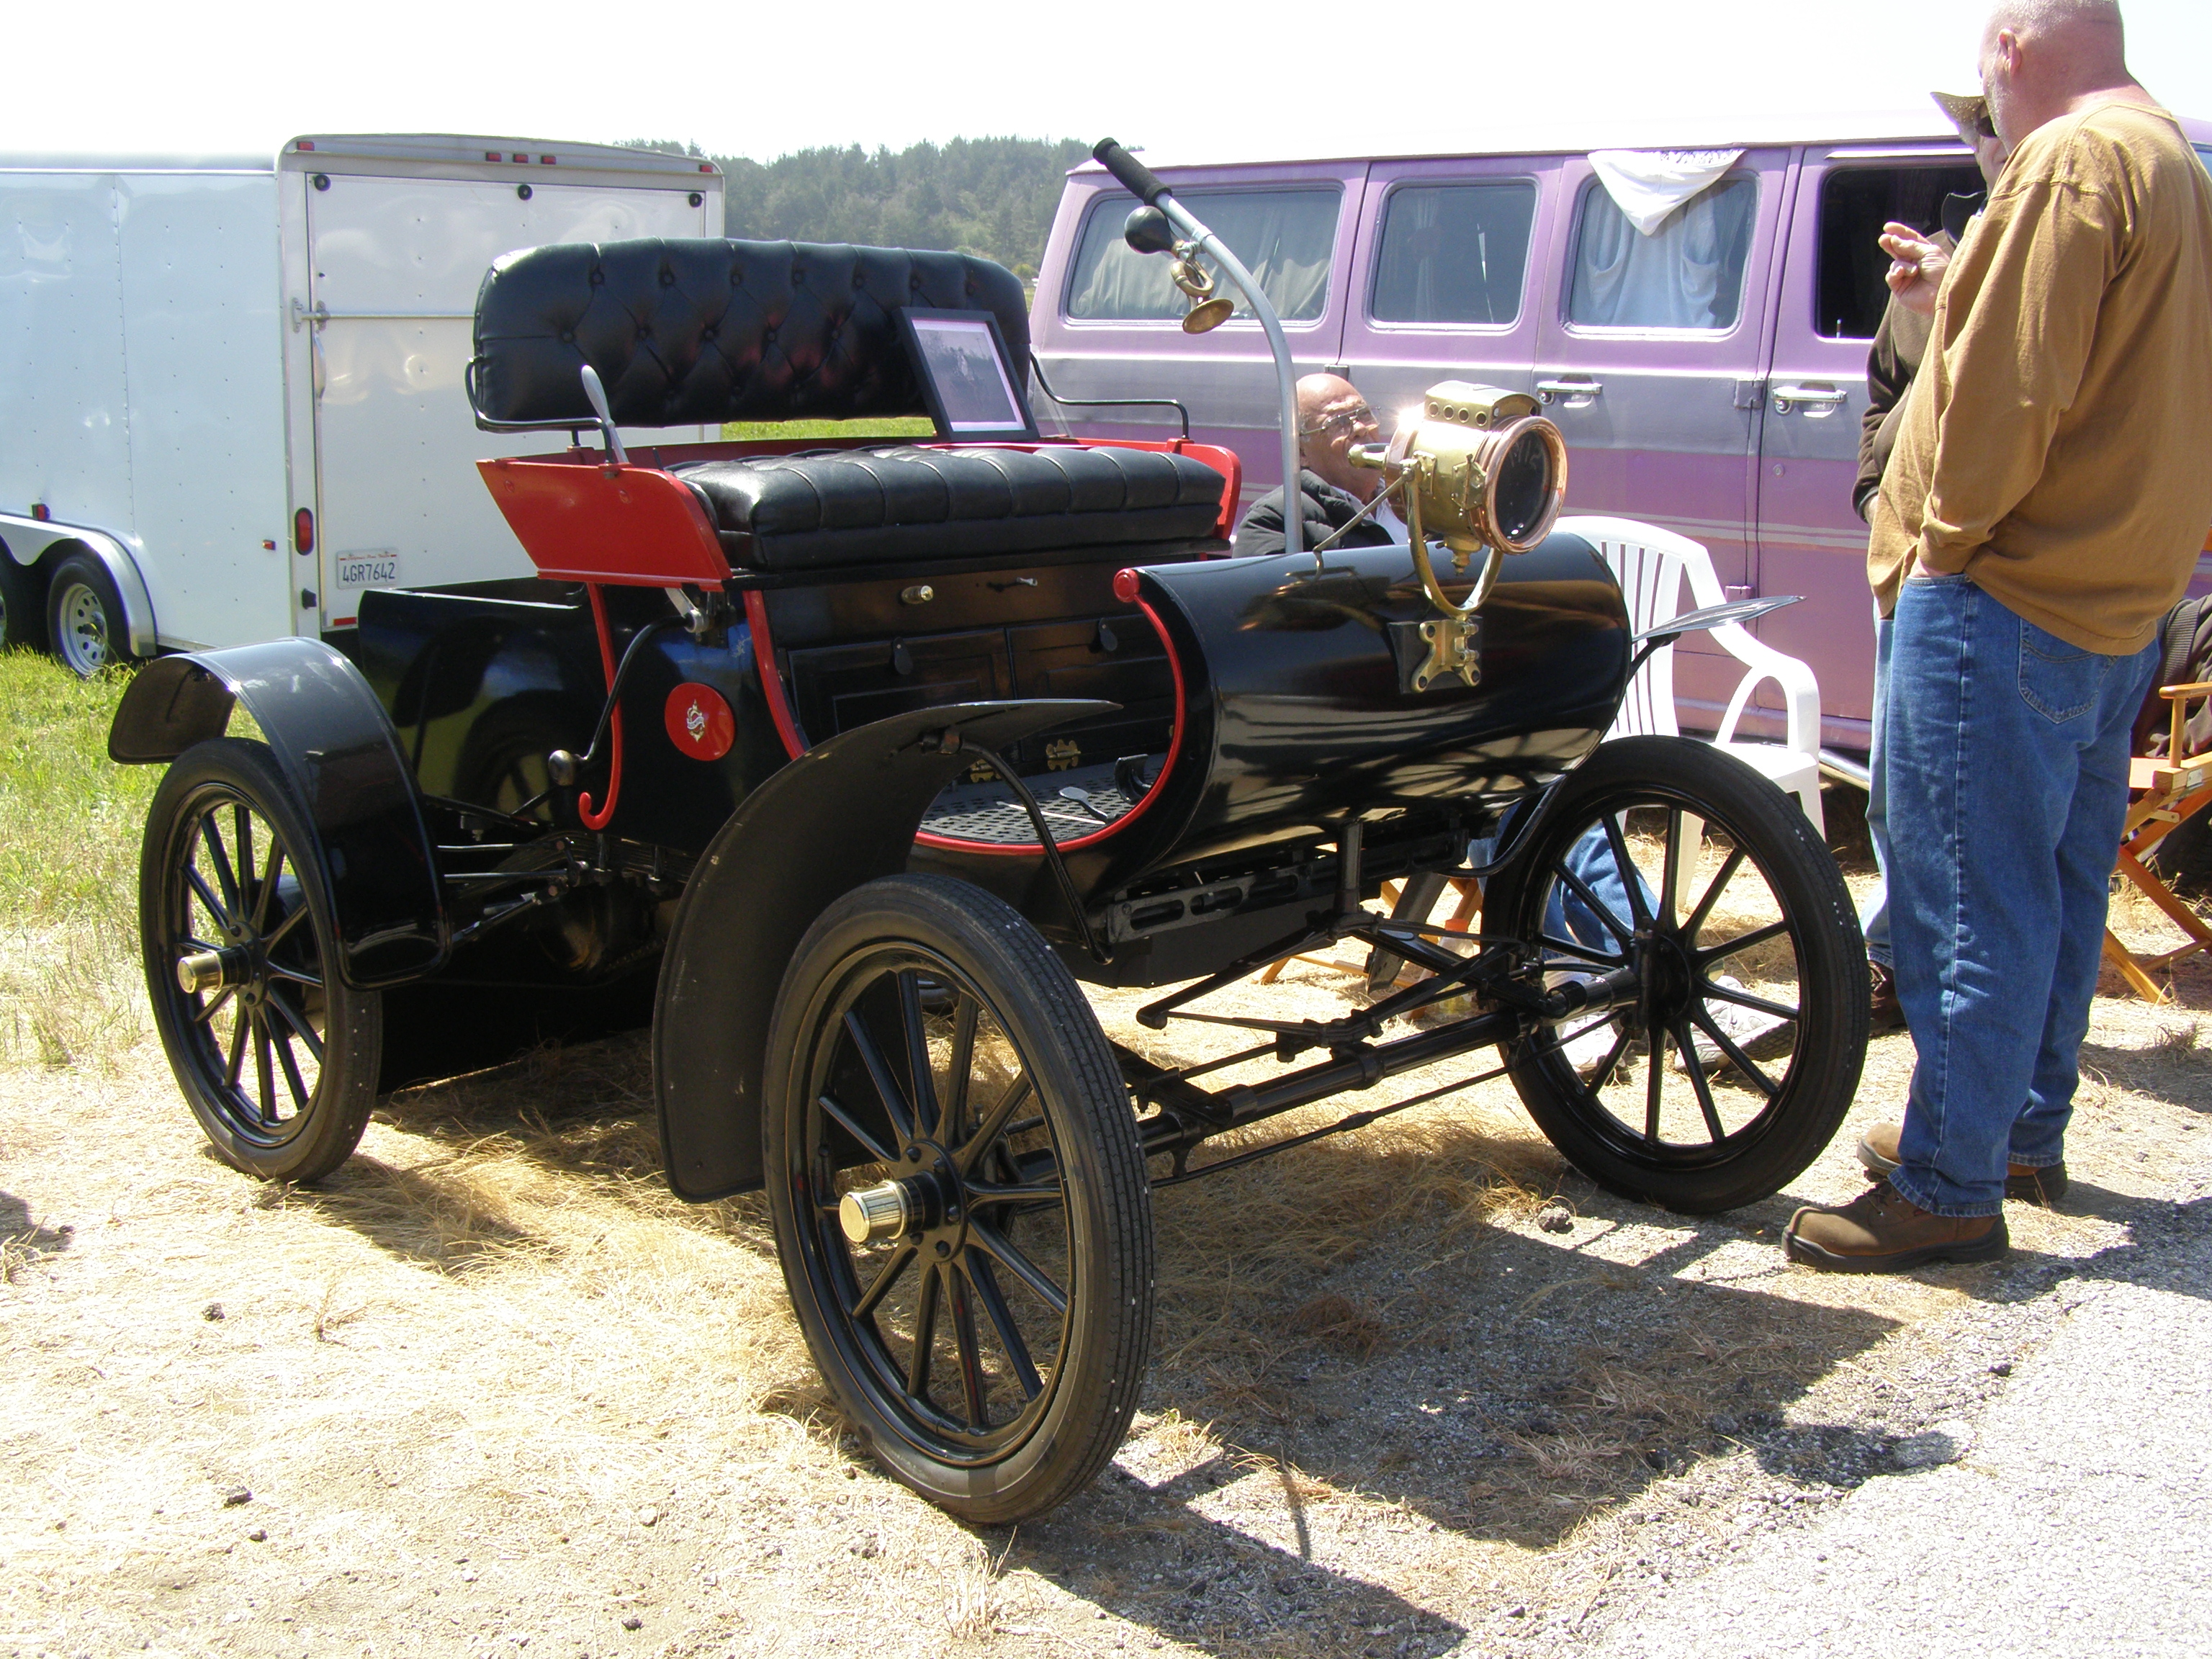 Beliefnet munity Something New This is one of the first cars